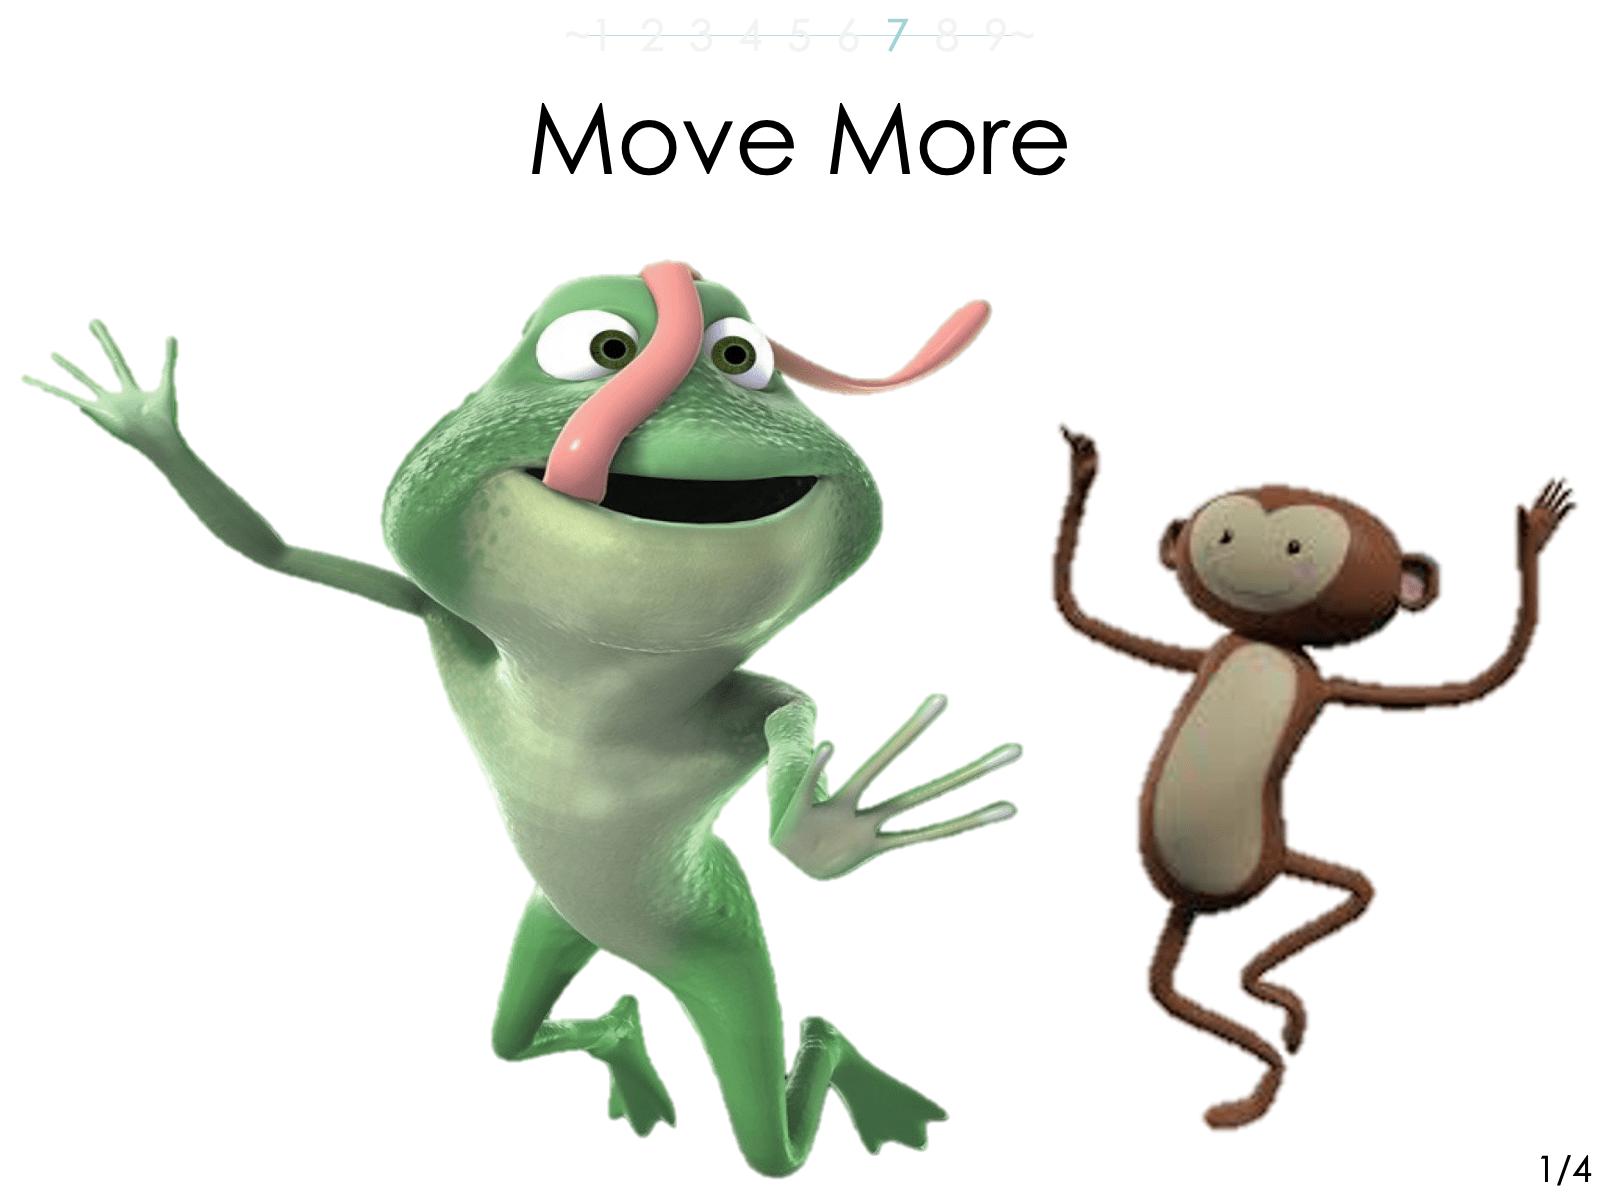 Part 8 of 12 is how to  -'Move More'.